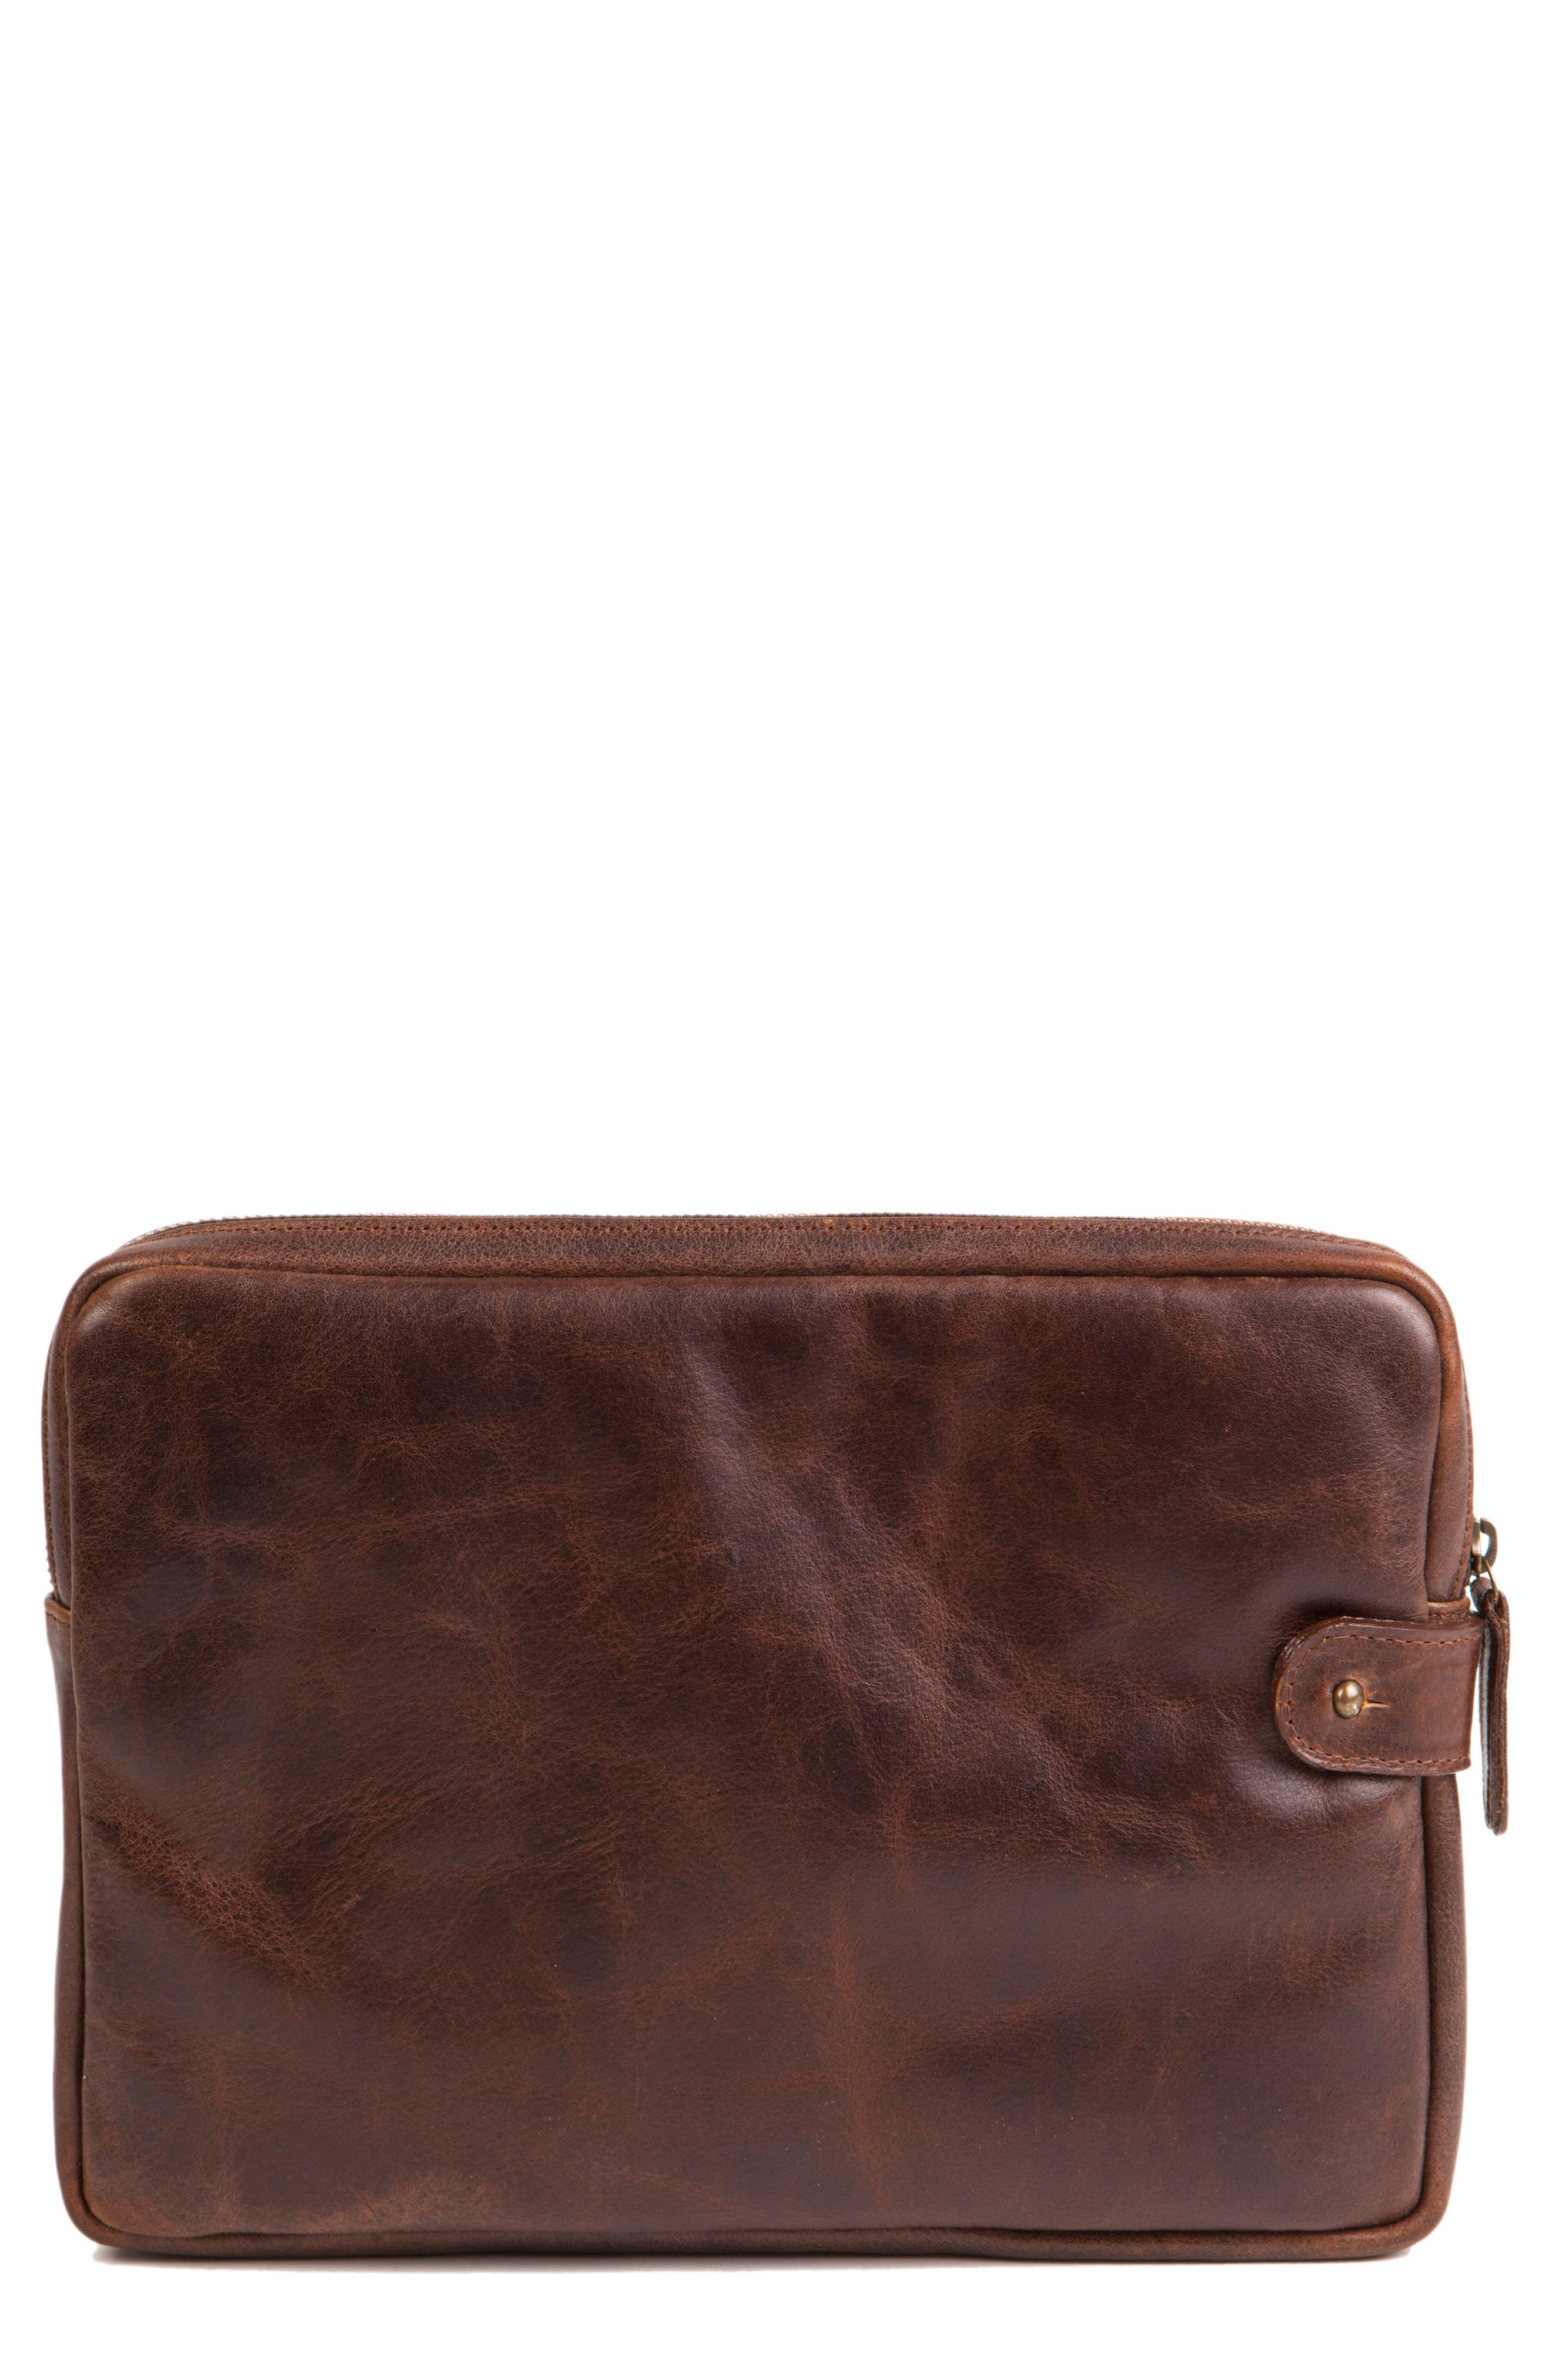 MOORE & GILES Leather Tablet Sleeve